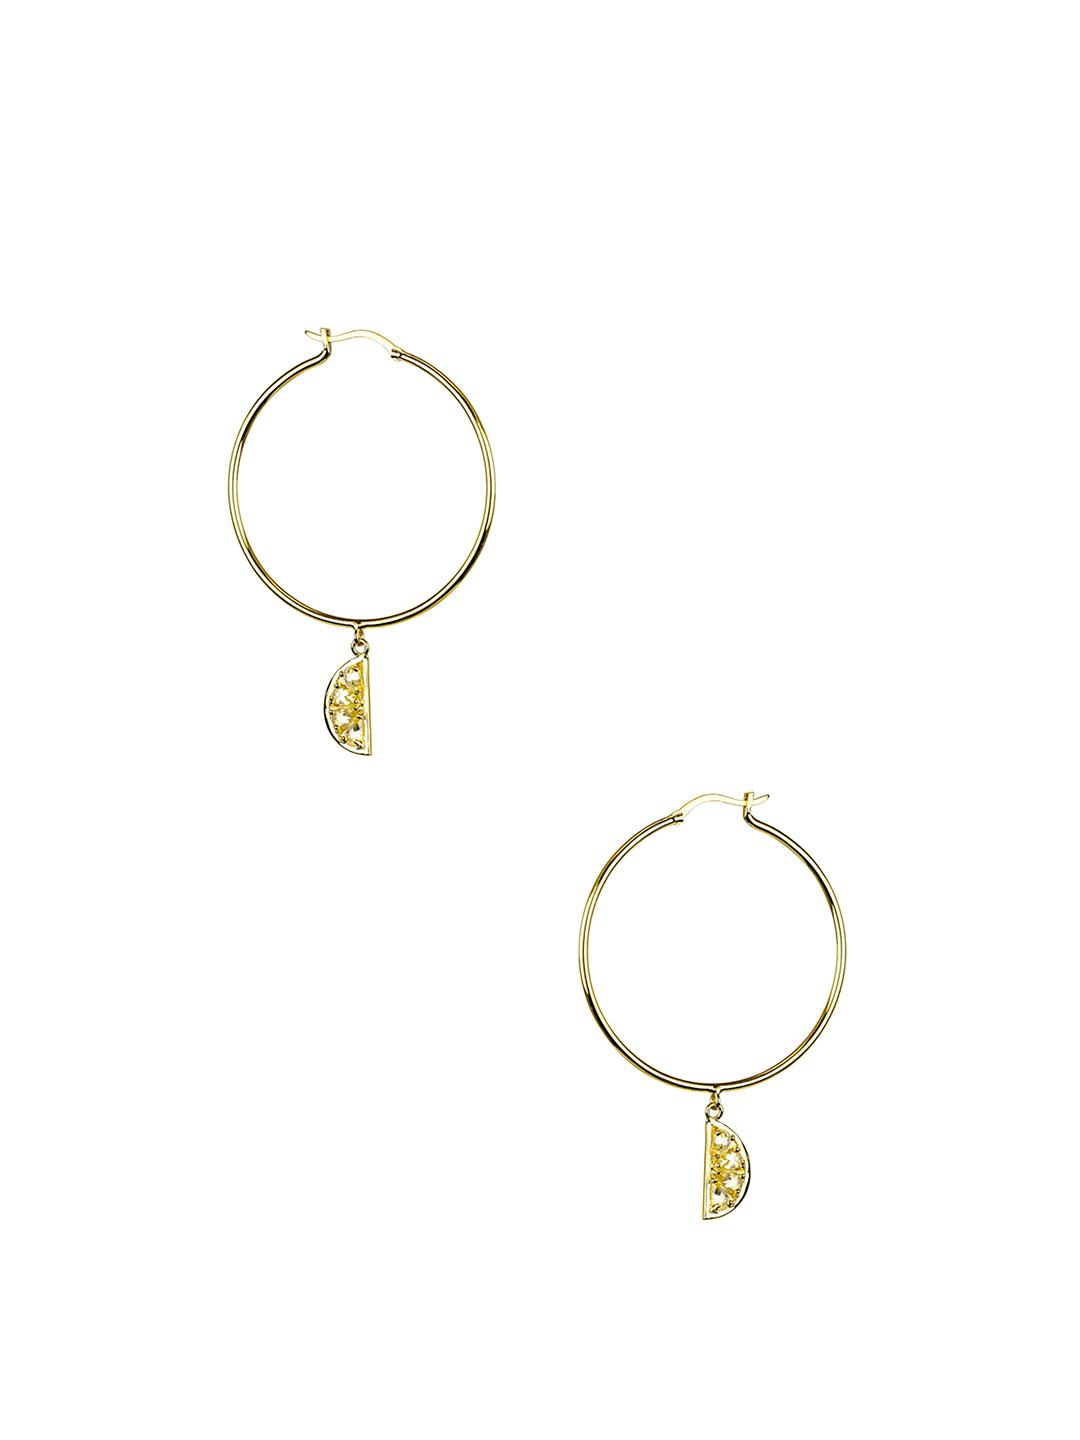 Noir JEWELRY - Earrings su YOOX.COM 2eH5xDmLLr